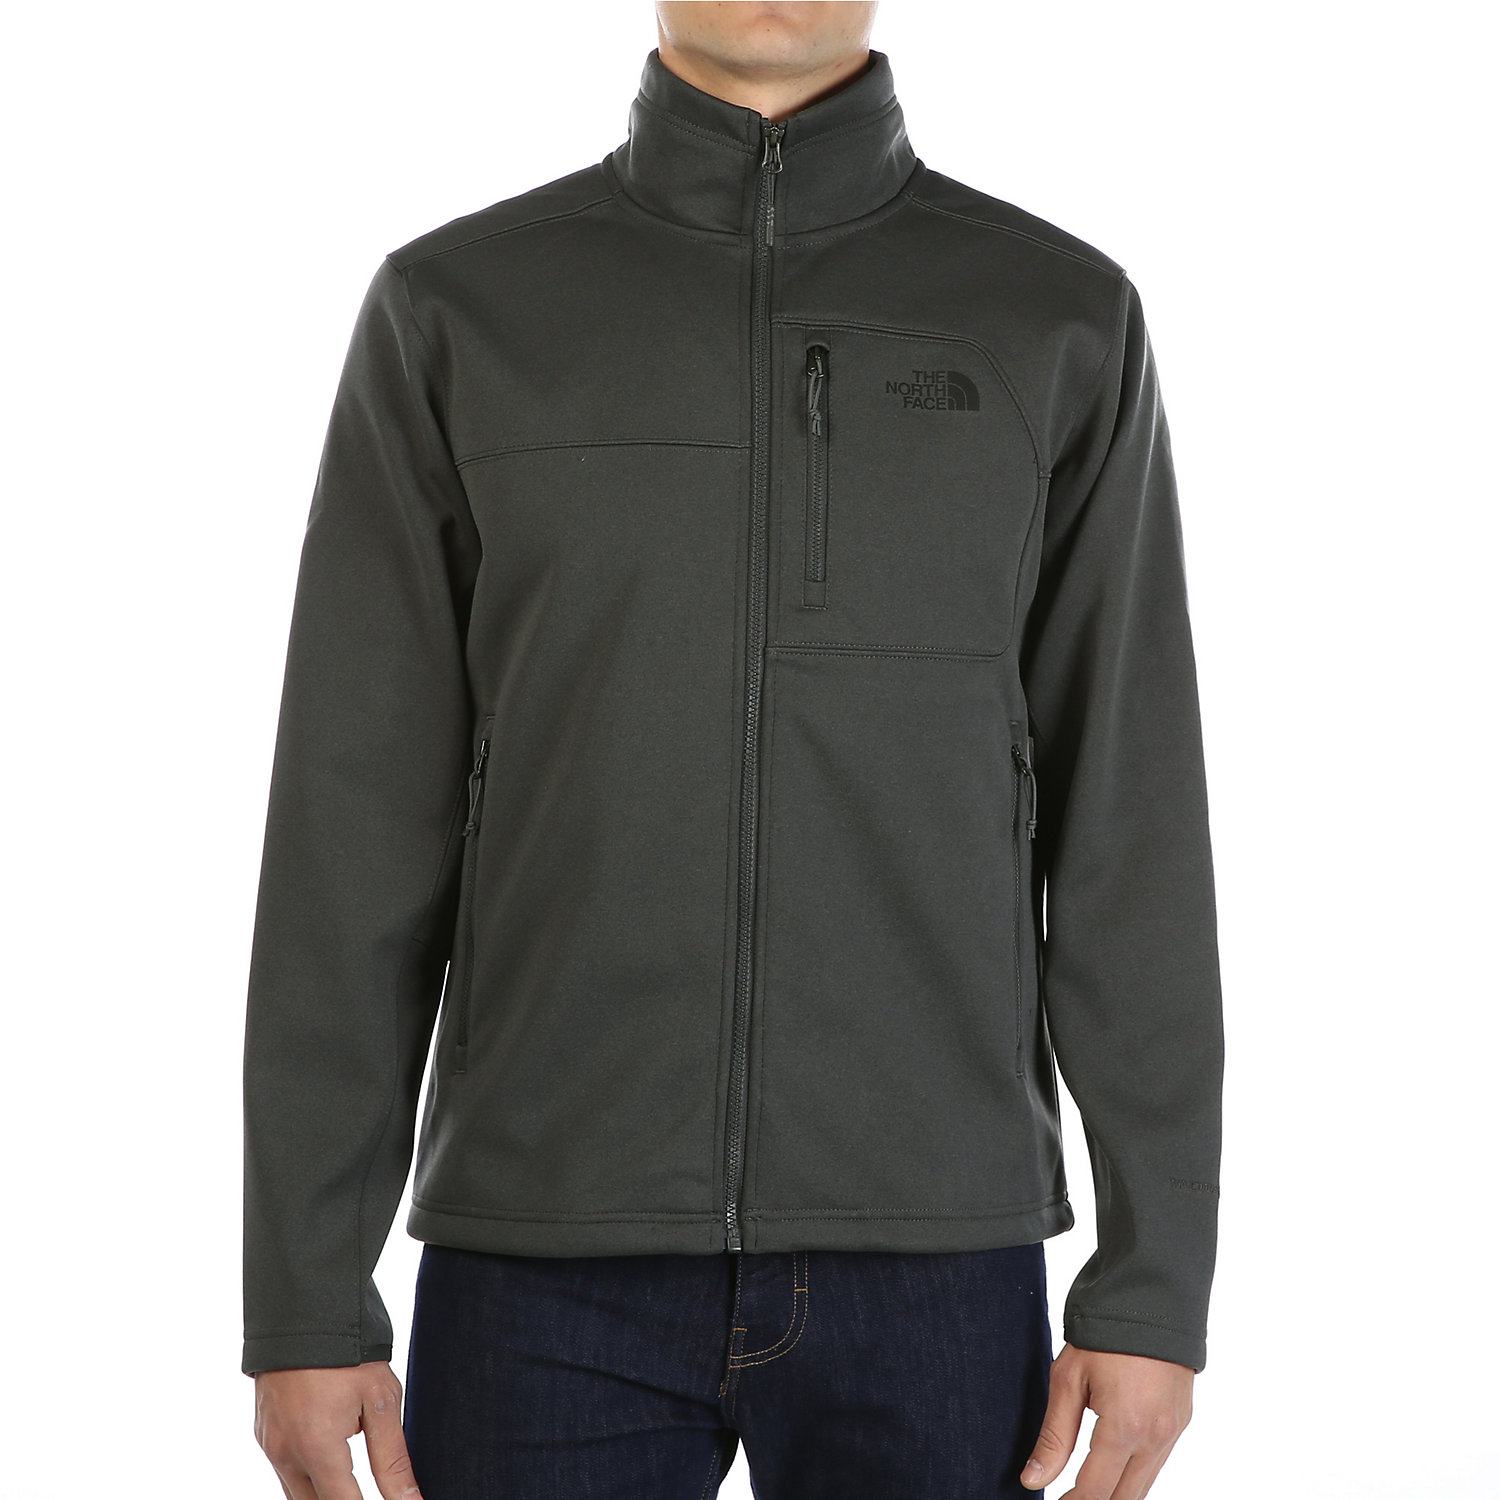 Mens Softshell Jackets. The North Face Men s Apex Risor Jacket. Double tap  to zoom. TNF Dark ... 7e755649a